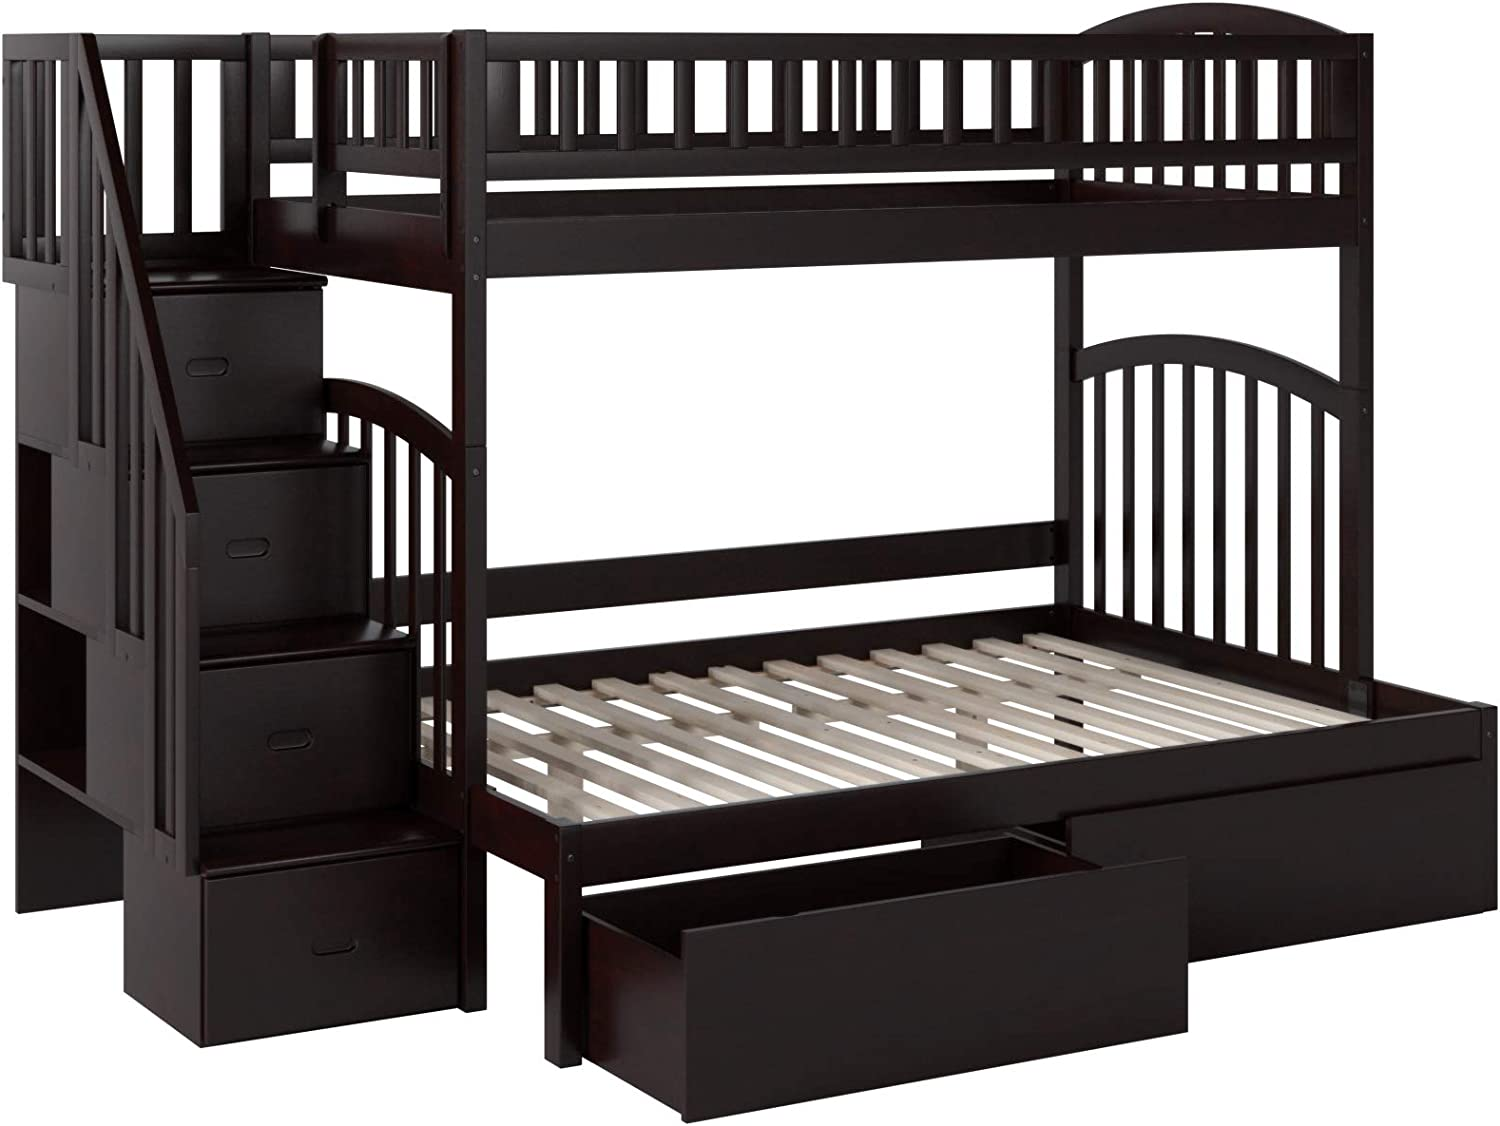 Atlantic Furniture Westbrook Bunk 2 Urban Bed Drawers, Twin/Full, Espresso